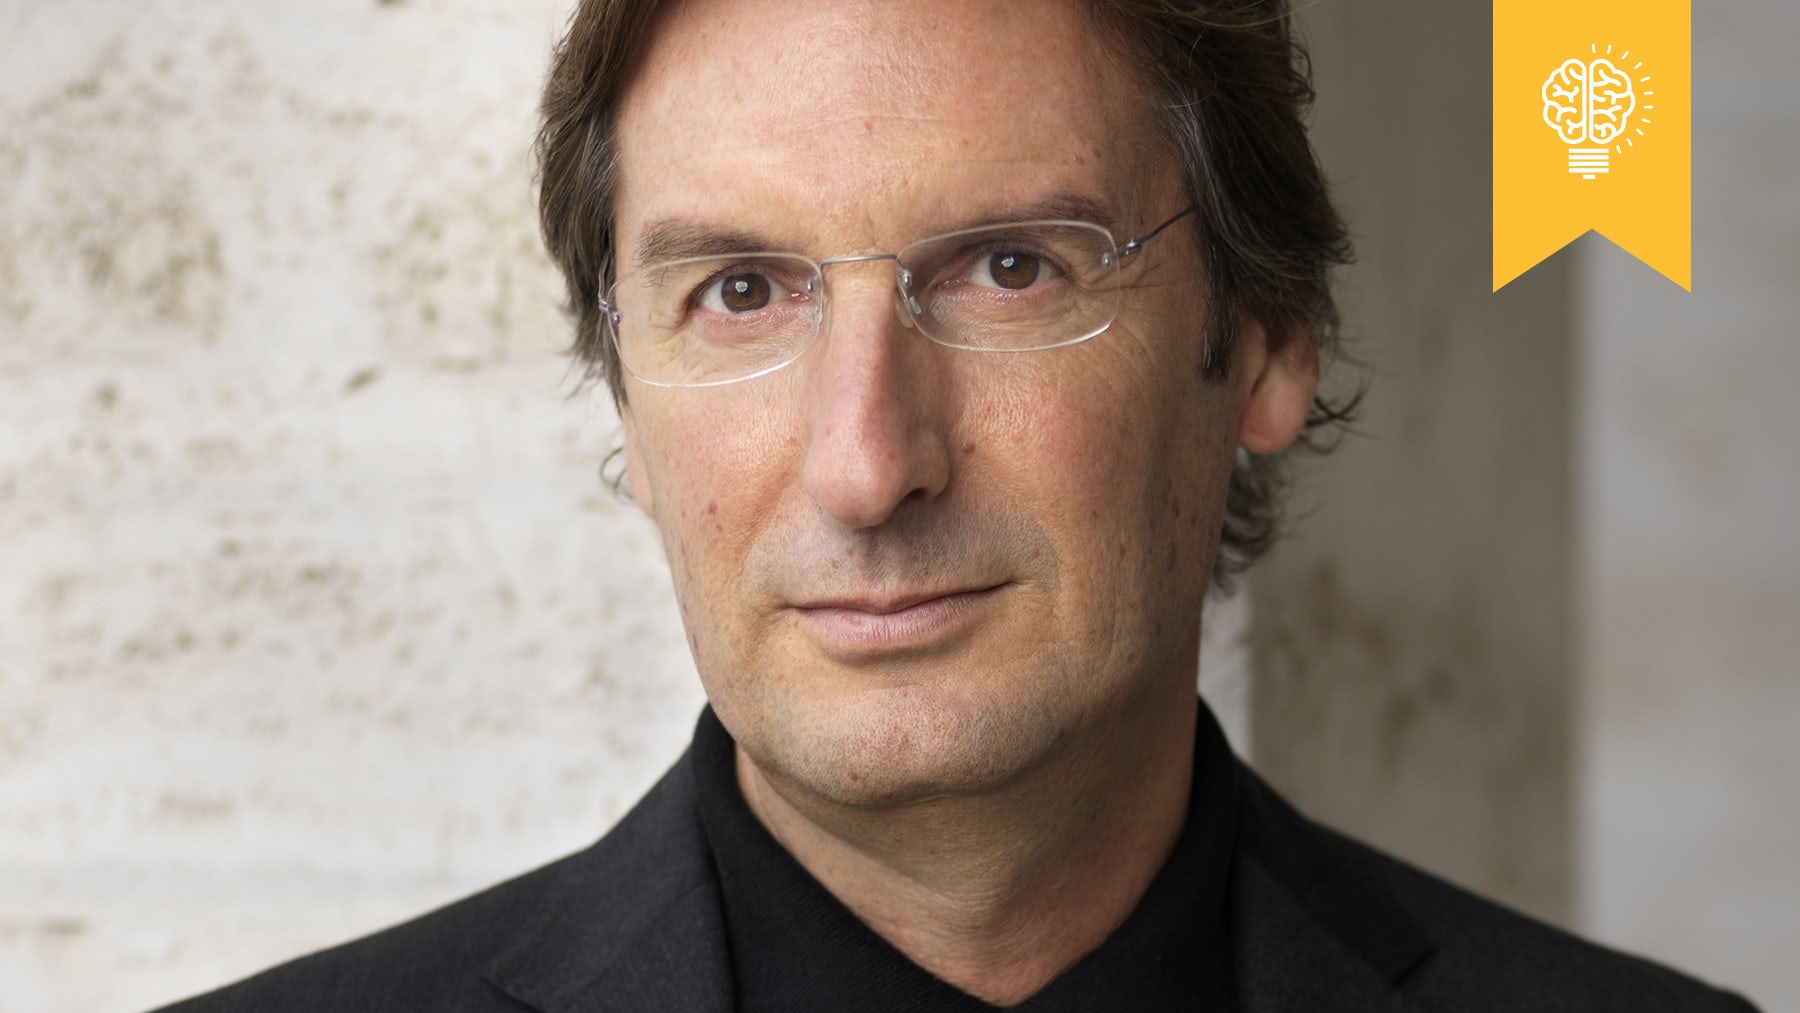 Fendi chief executive Pietro Beccari, who is set to take the top job at Dior in February | Source: Courtesy